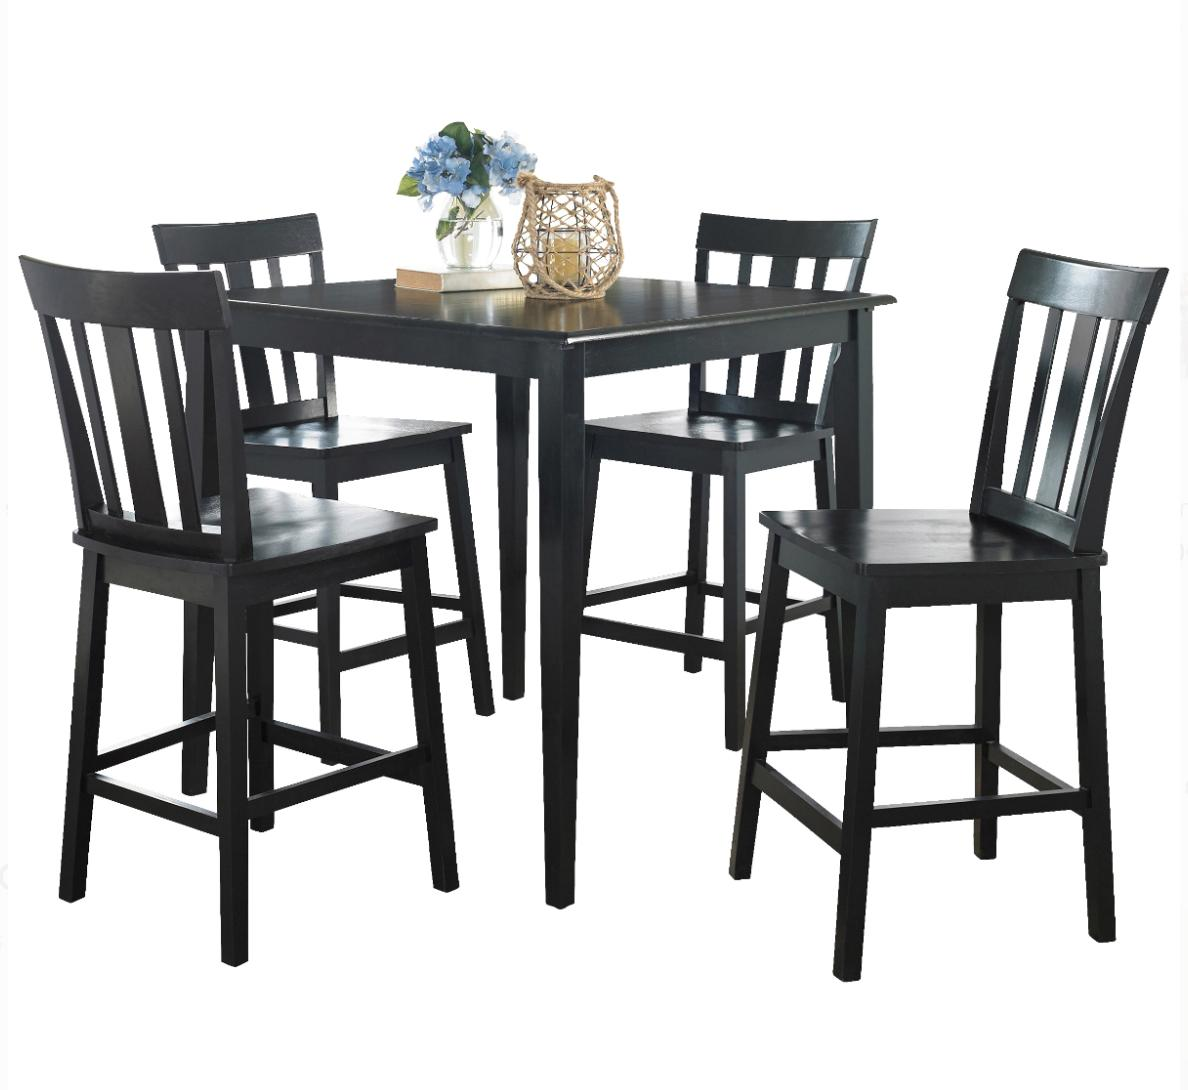 Counter Height Table & 5 Breakfast Black